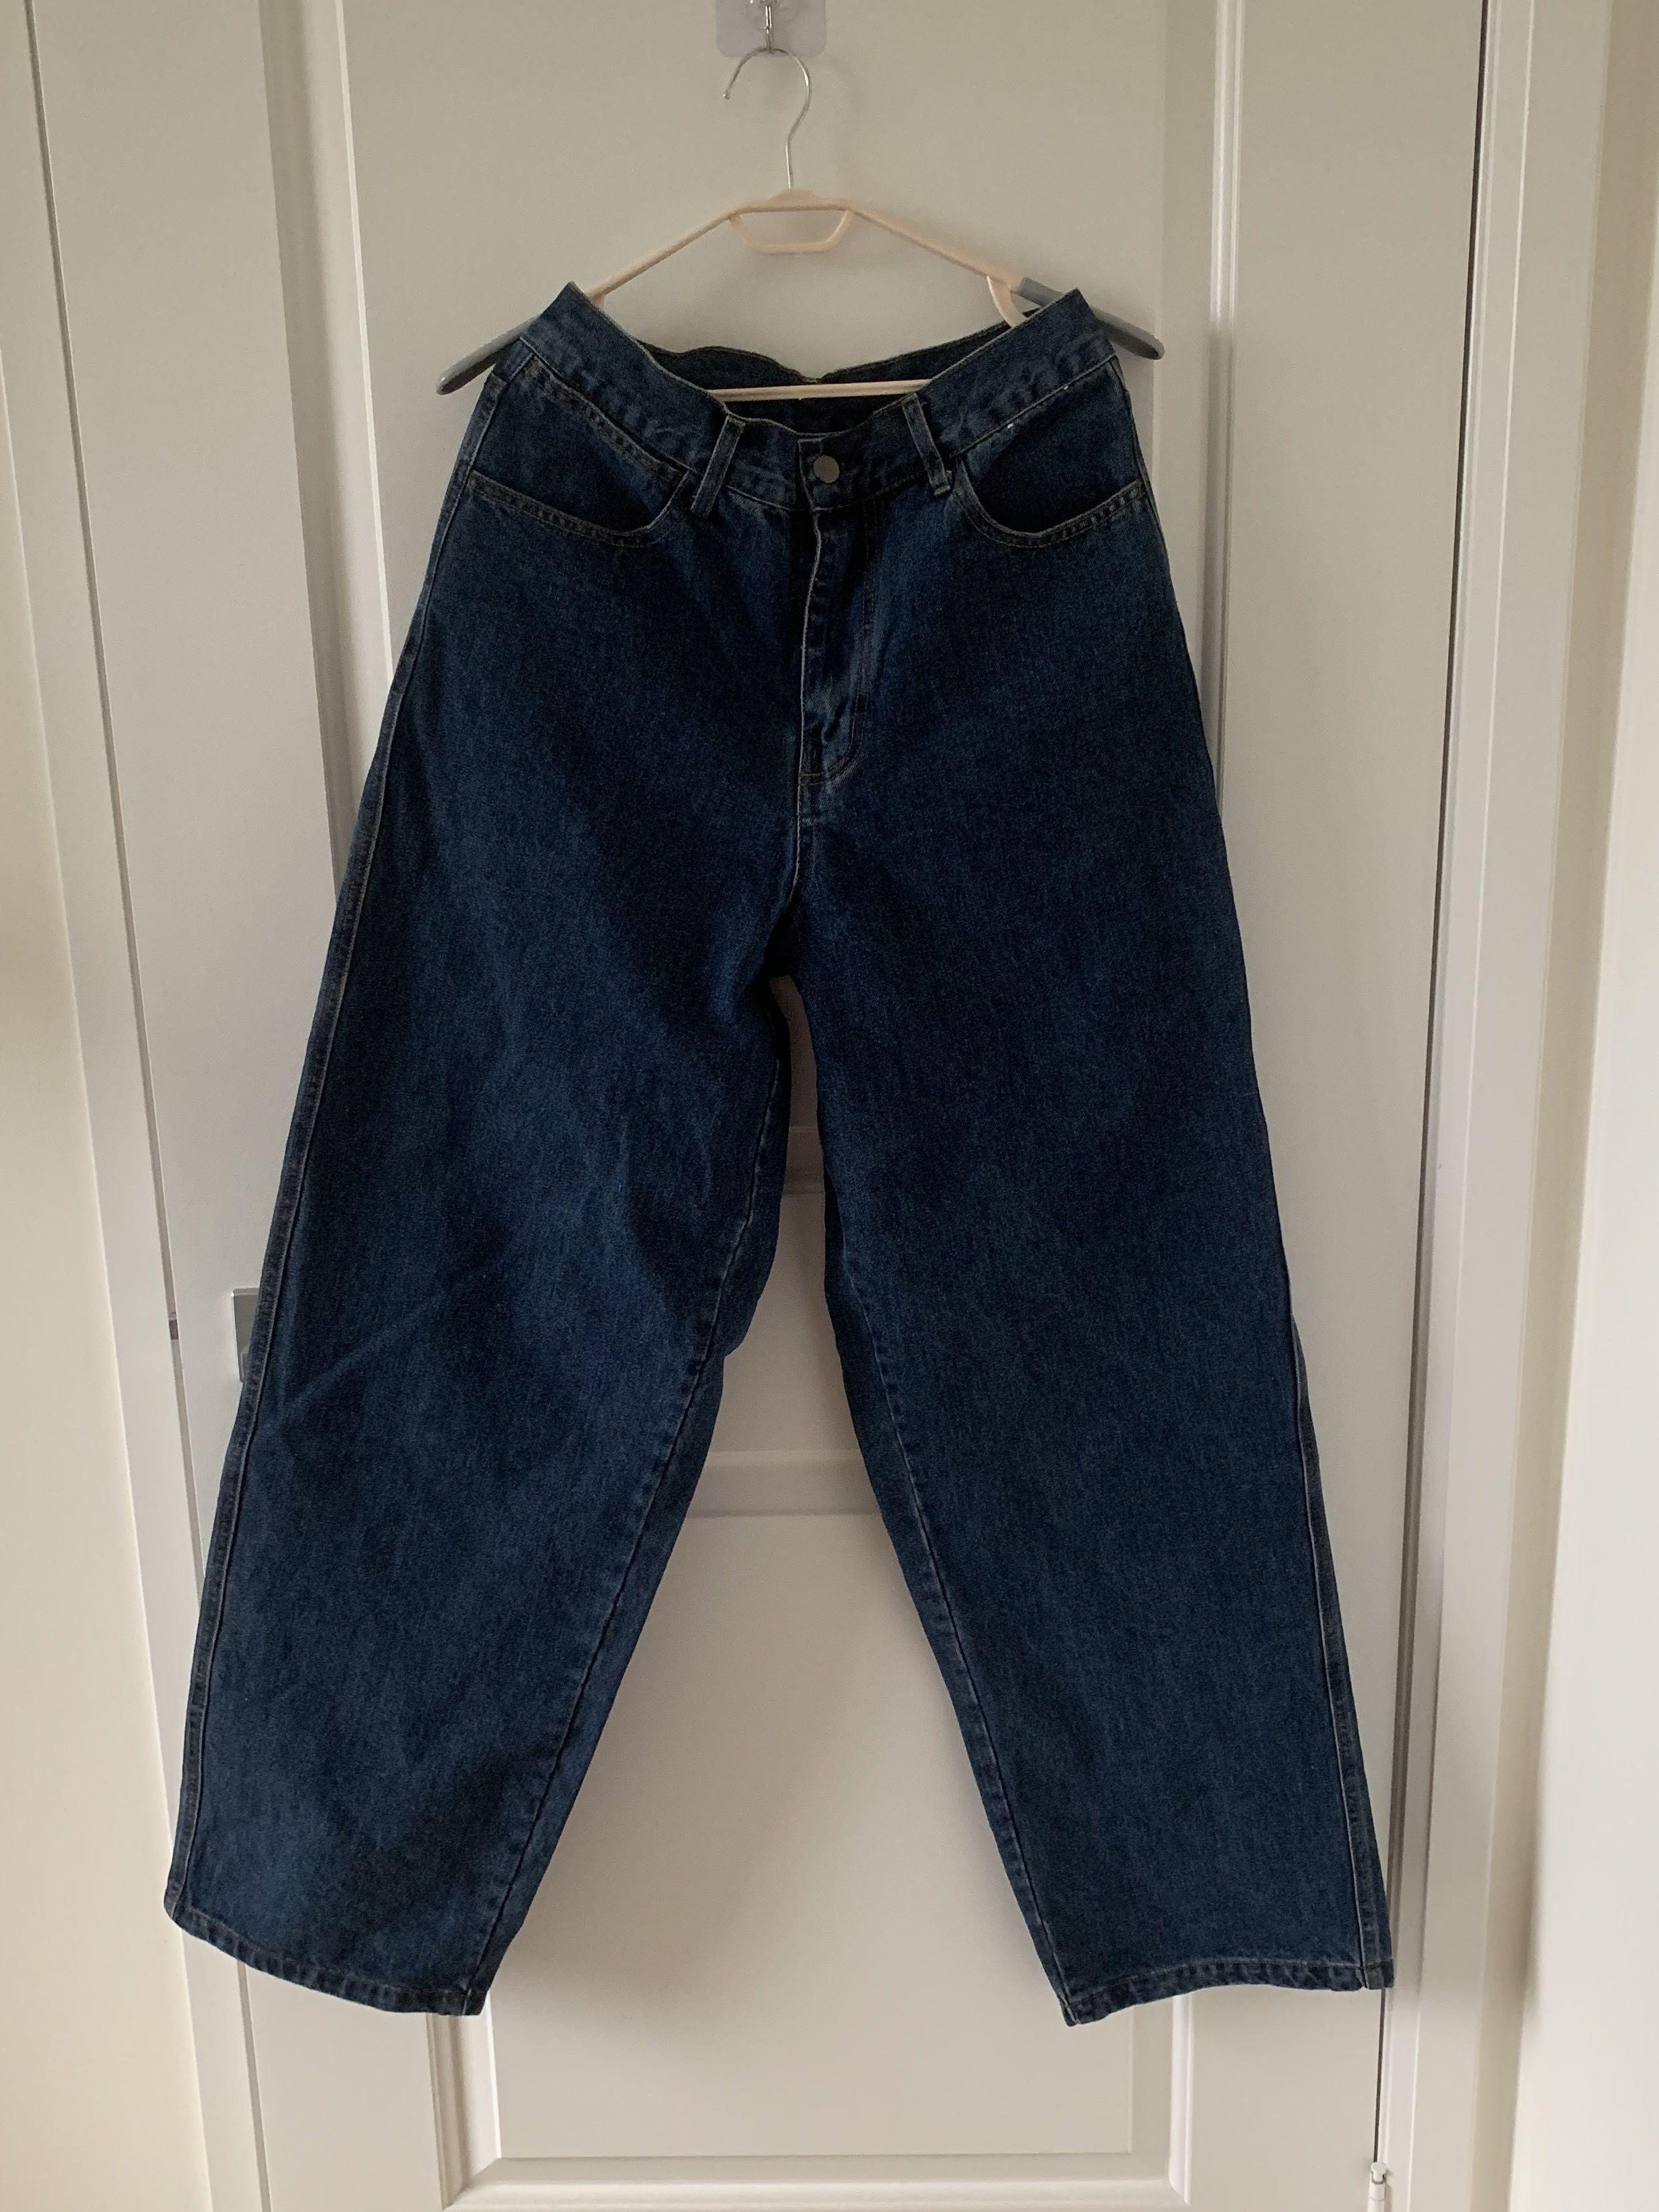 NEW Wide-legged Jeans